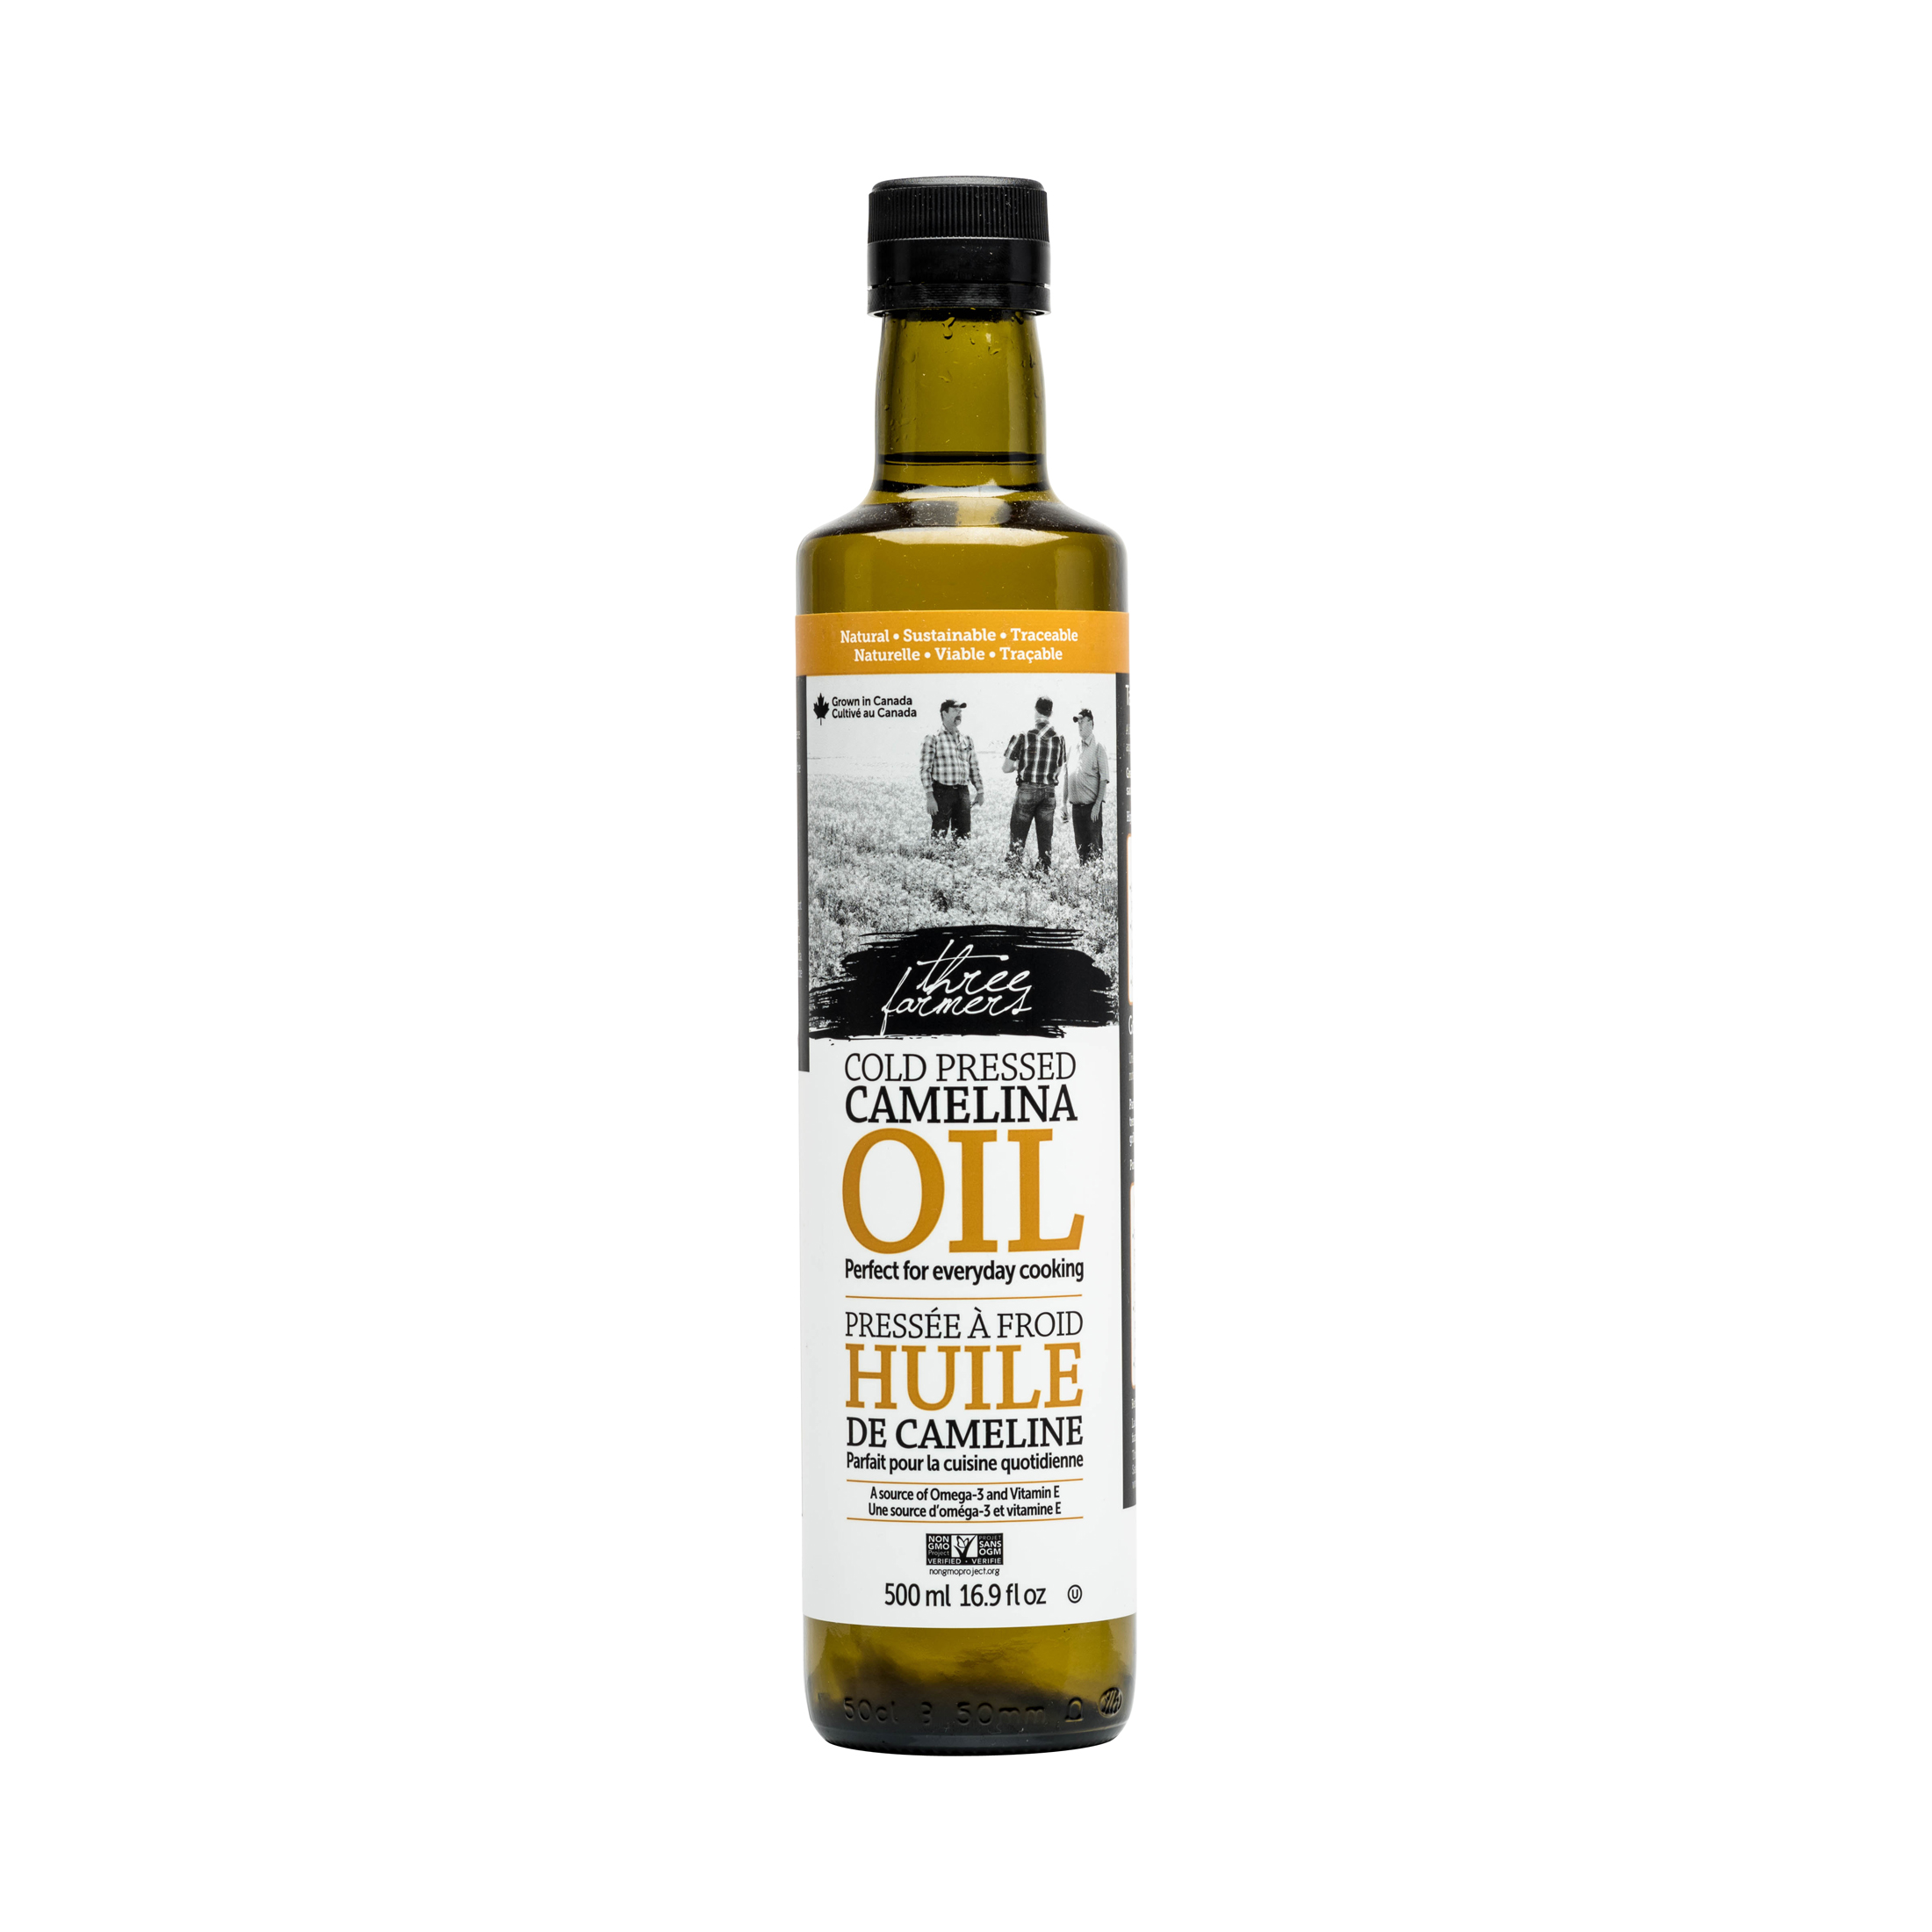 CAMELINA COLD PRESS OIL